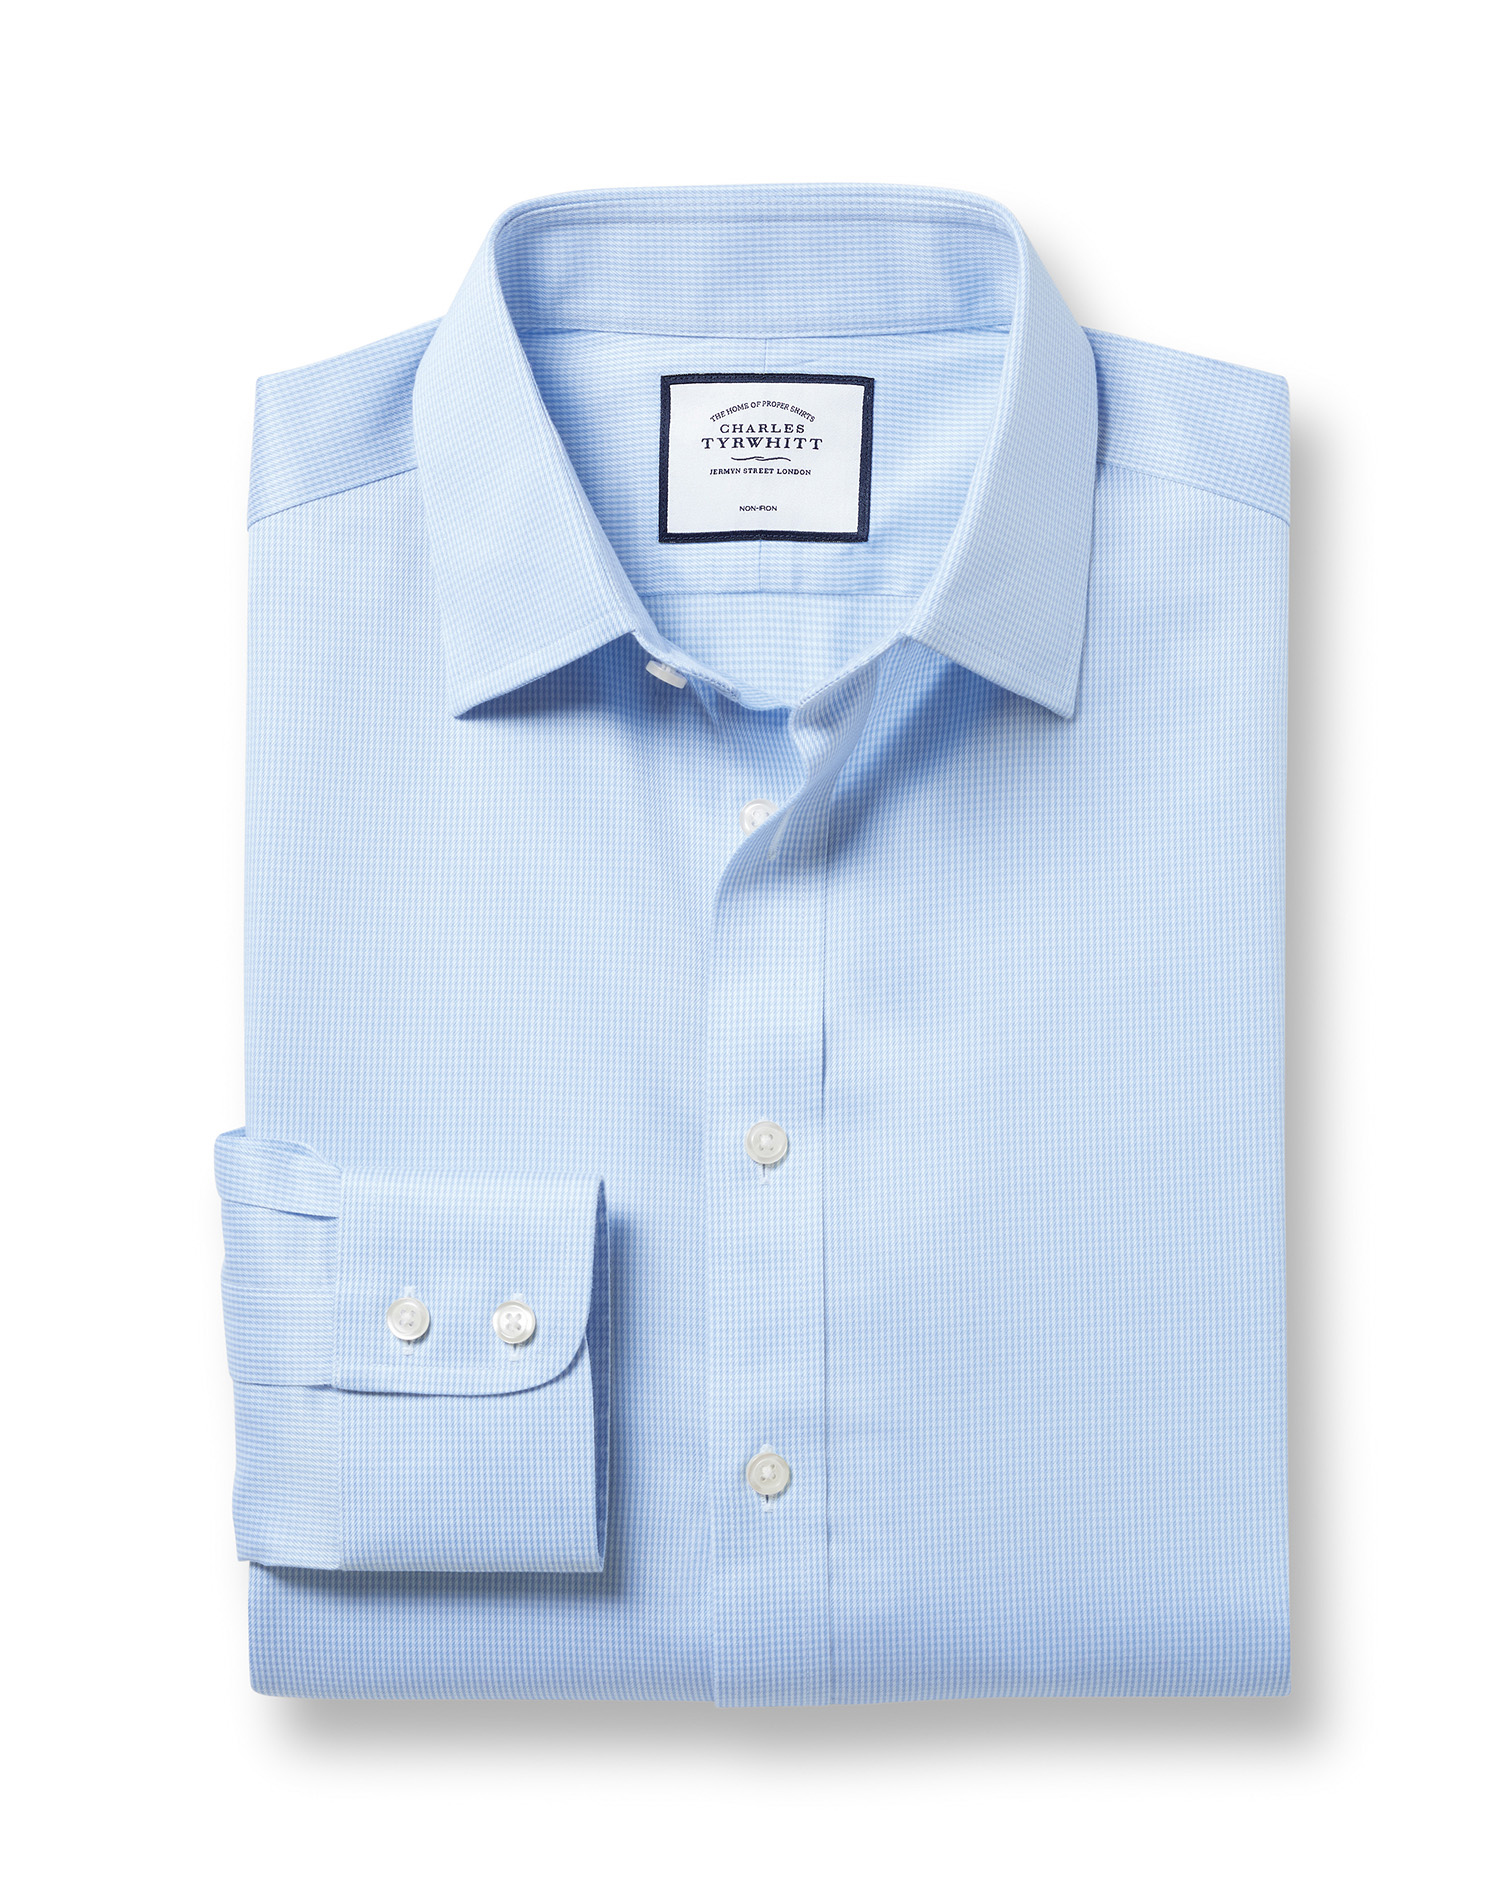 Classic Fit Non-Iron Puppytooth Sky Blue Cotton Formal Shirt Single Cuff Size 15.5/37 by Charles Tyr